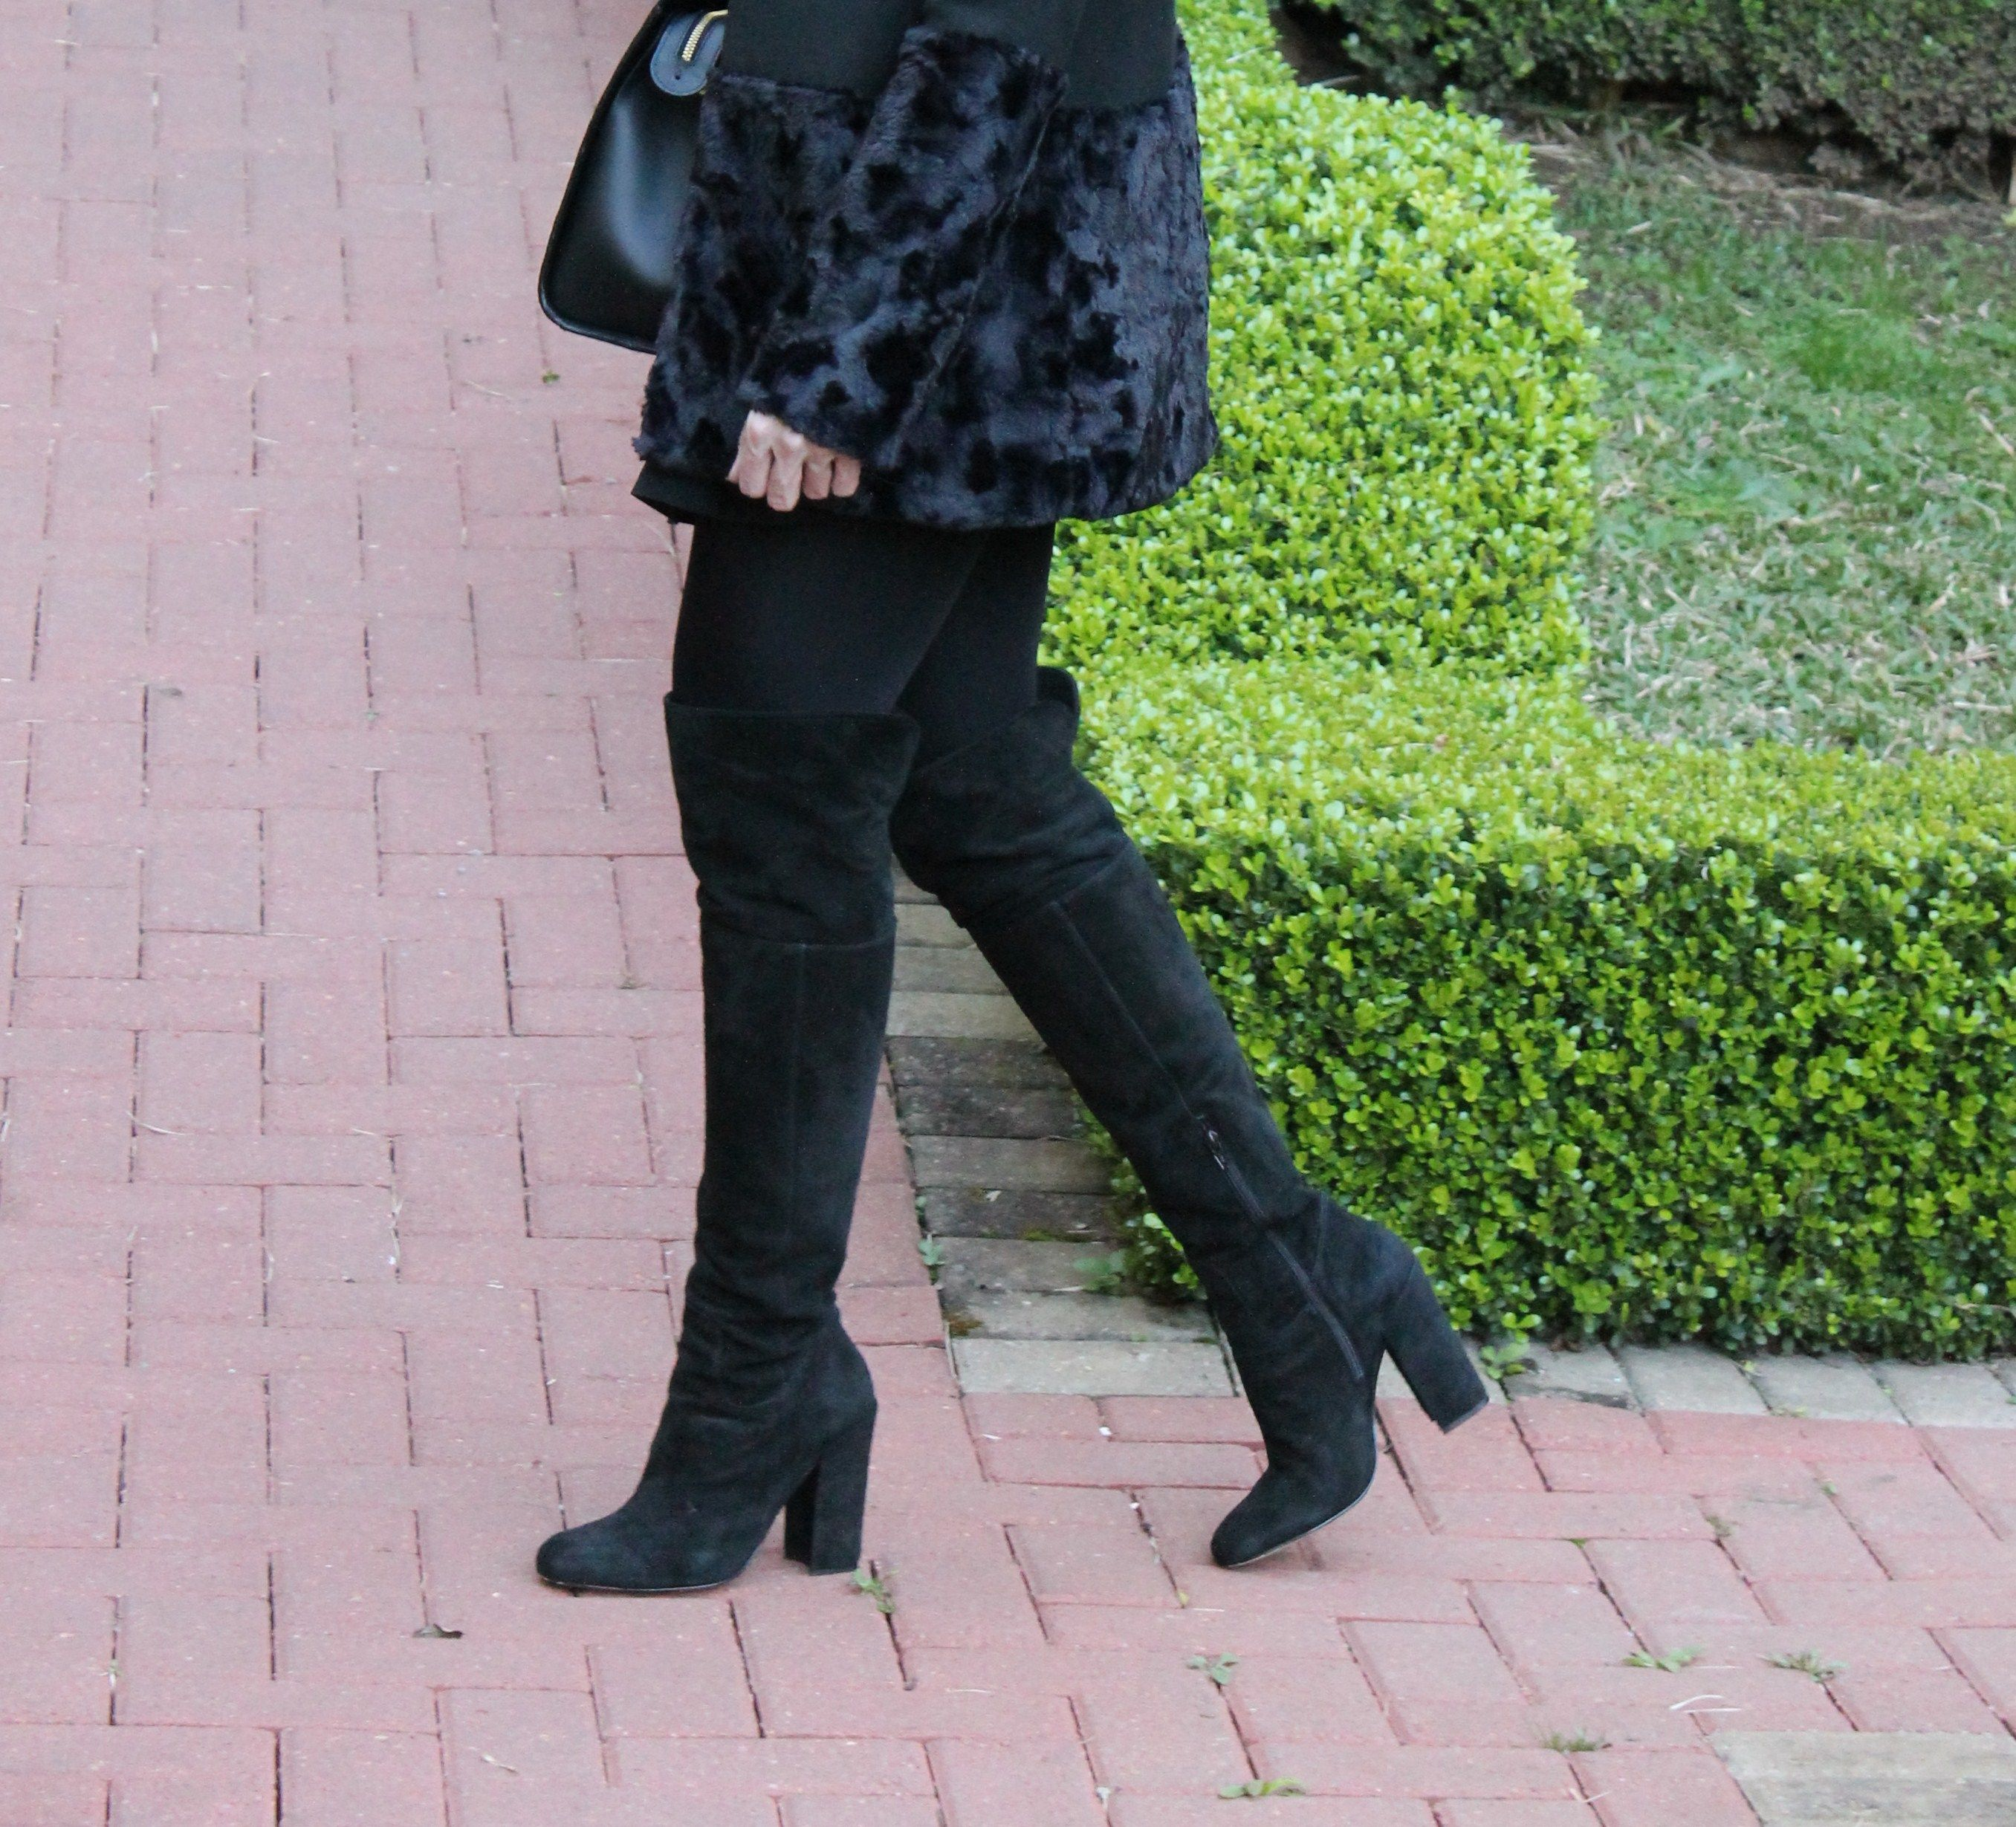 Blog Caca Dorceles. 2014. Meu look: Casaco Barra de Pele. Details: Mixed coat + Luiza Barcelos boot.